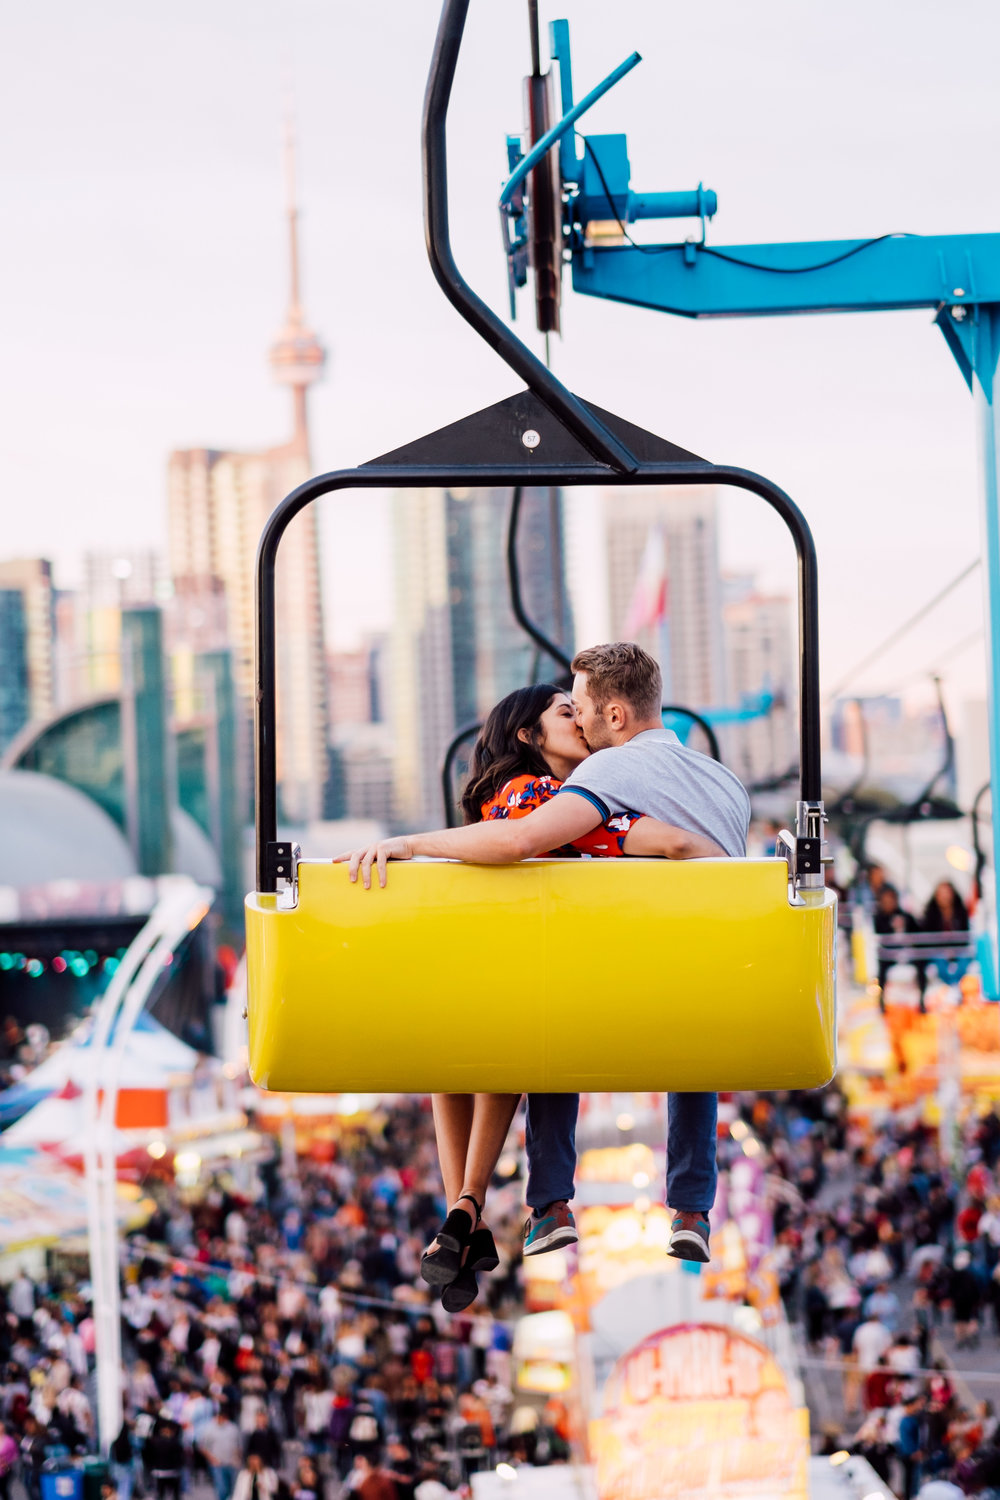 Engagement_Photography_Carnival_Fair-youthebestphotos-6.jpg